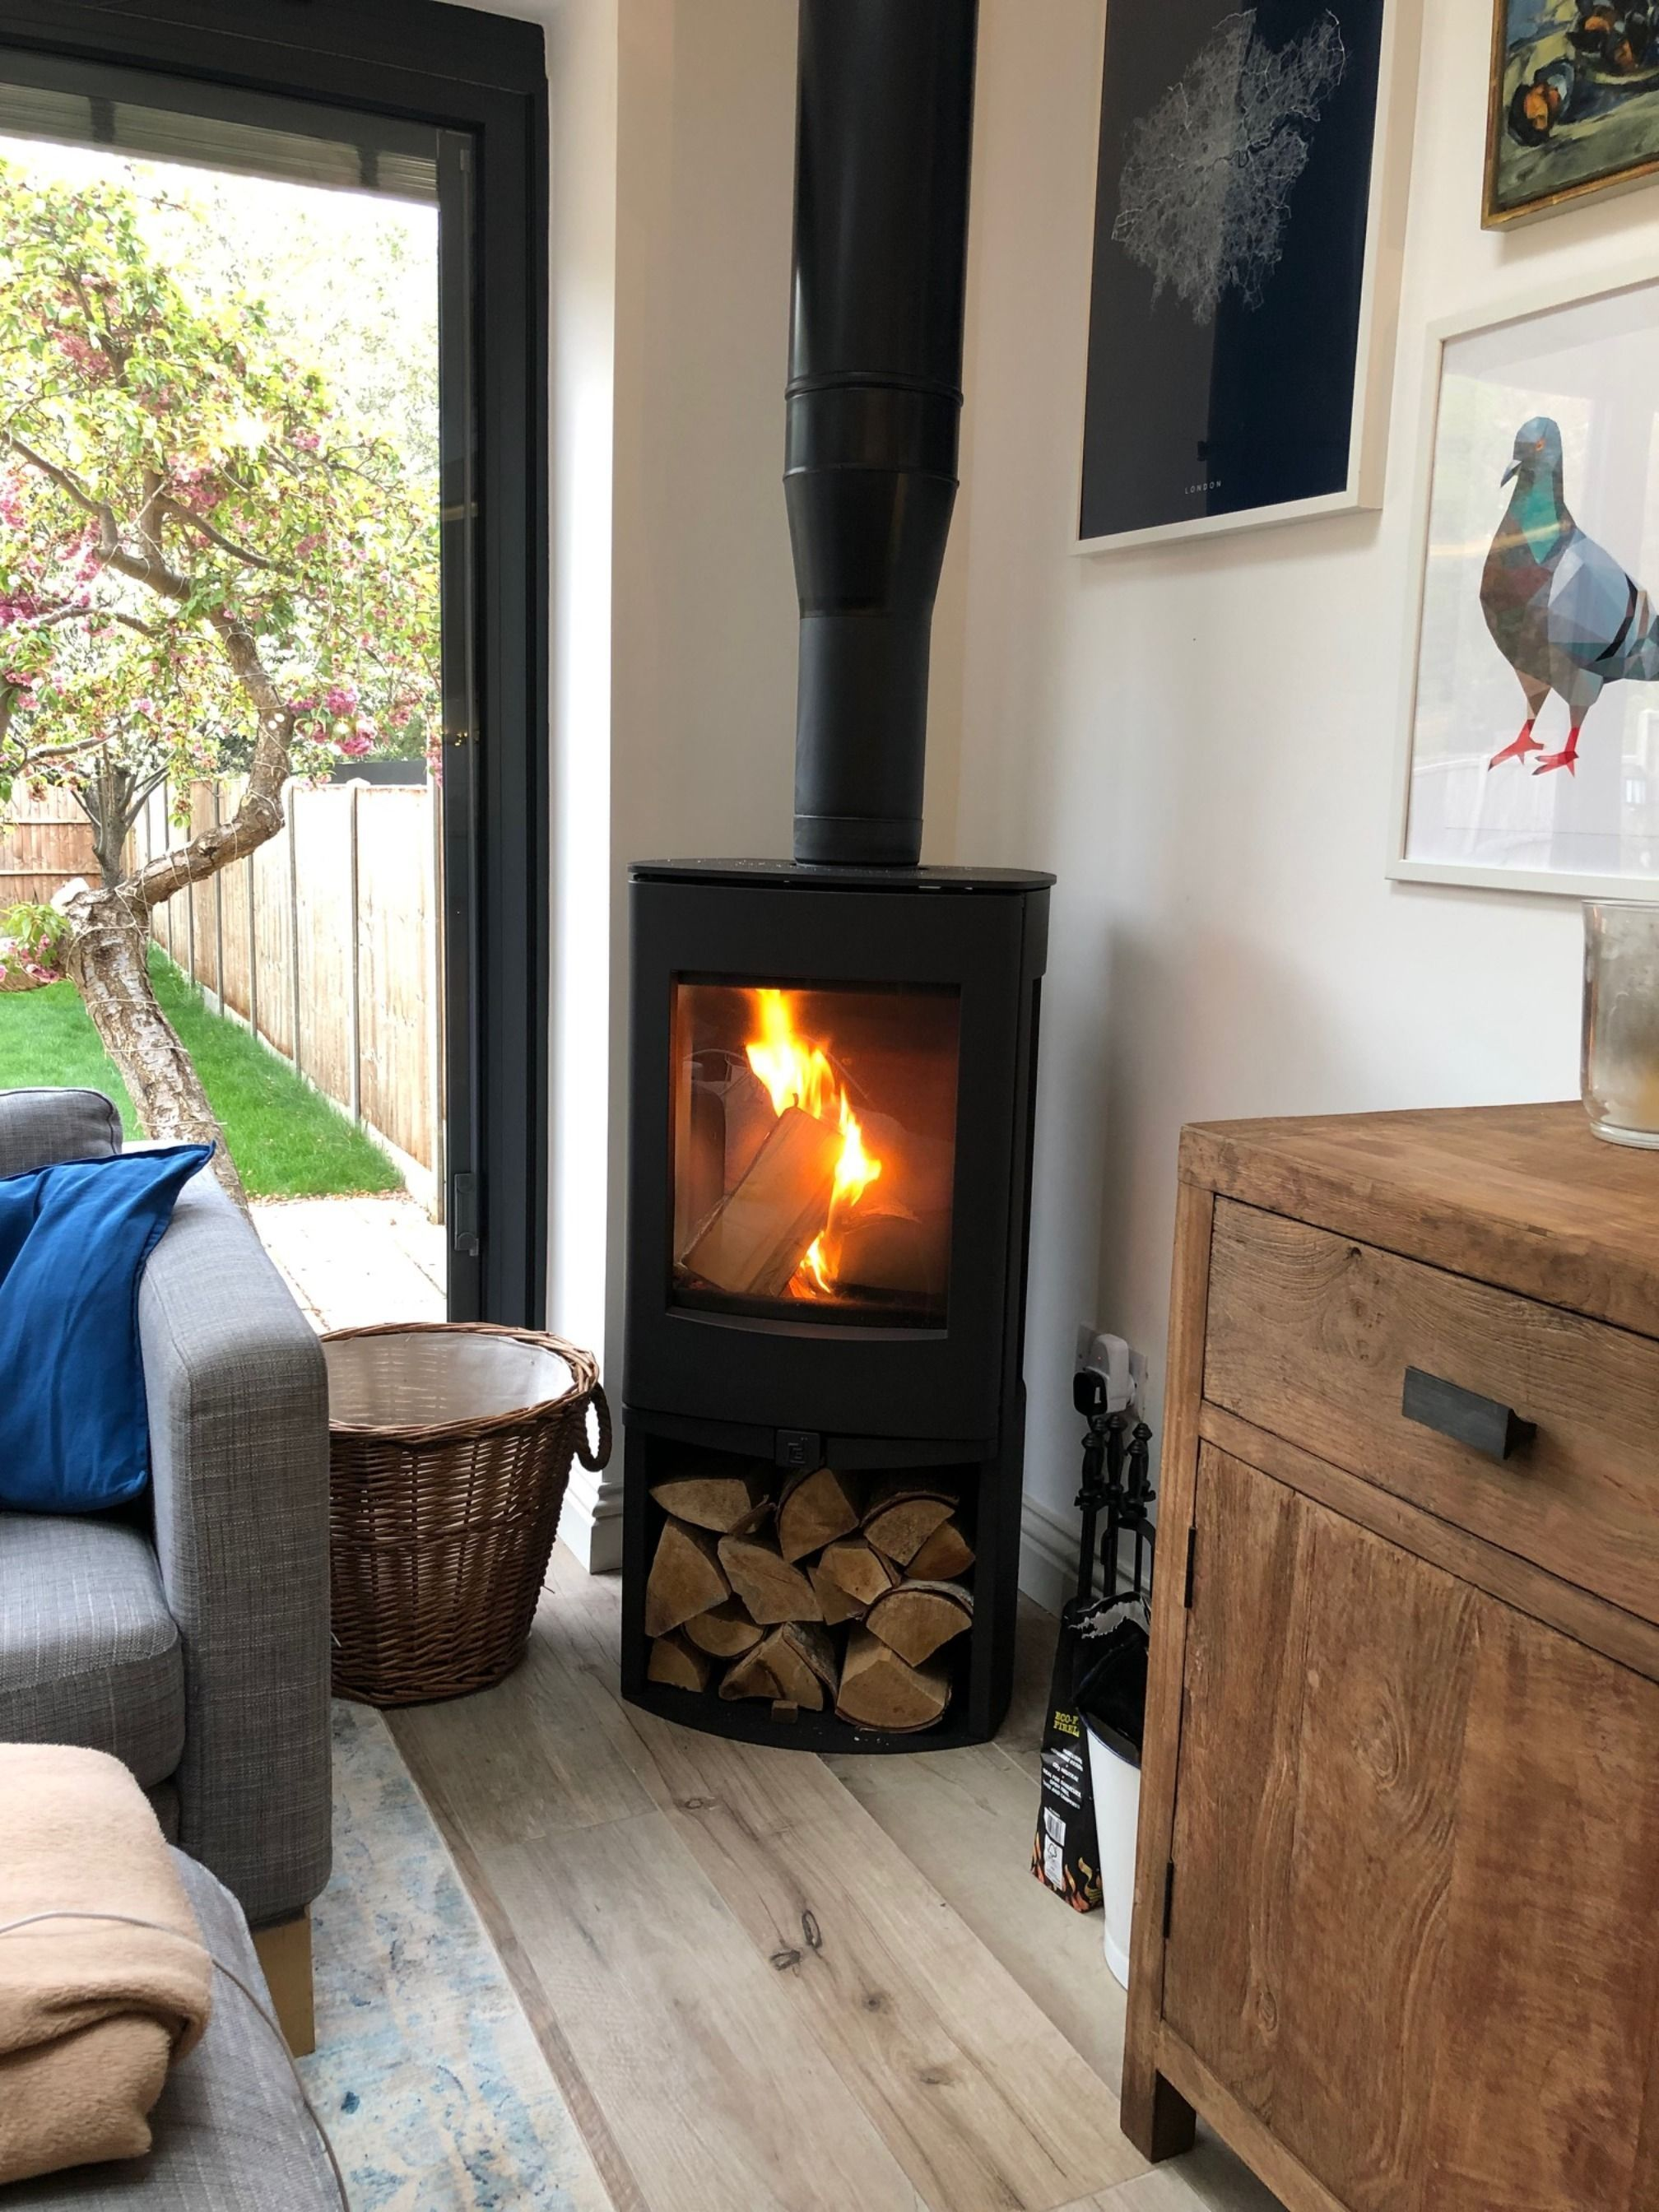 Modern Freestanding Wood Burning Stove Installation Bushey Watford Burning Log Burner Living Room Freestanding Fireplace Wood Burning Stoves Living Room